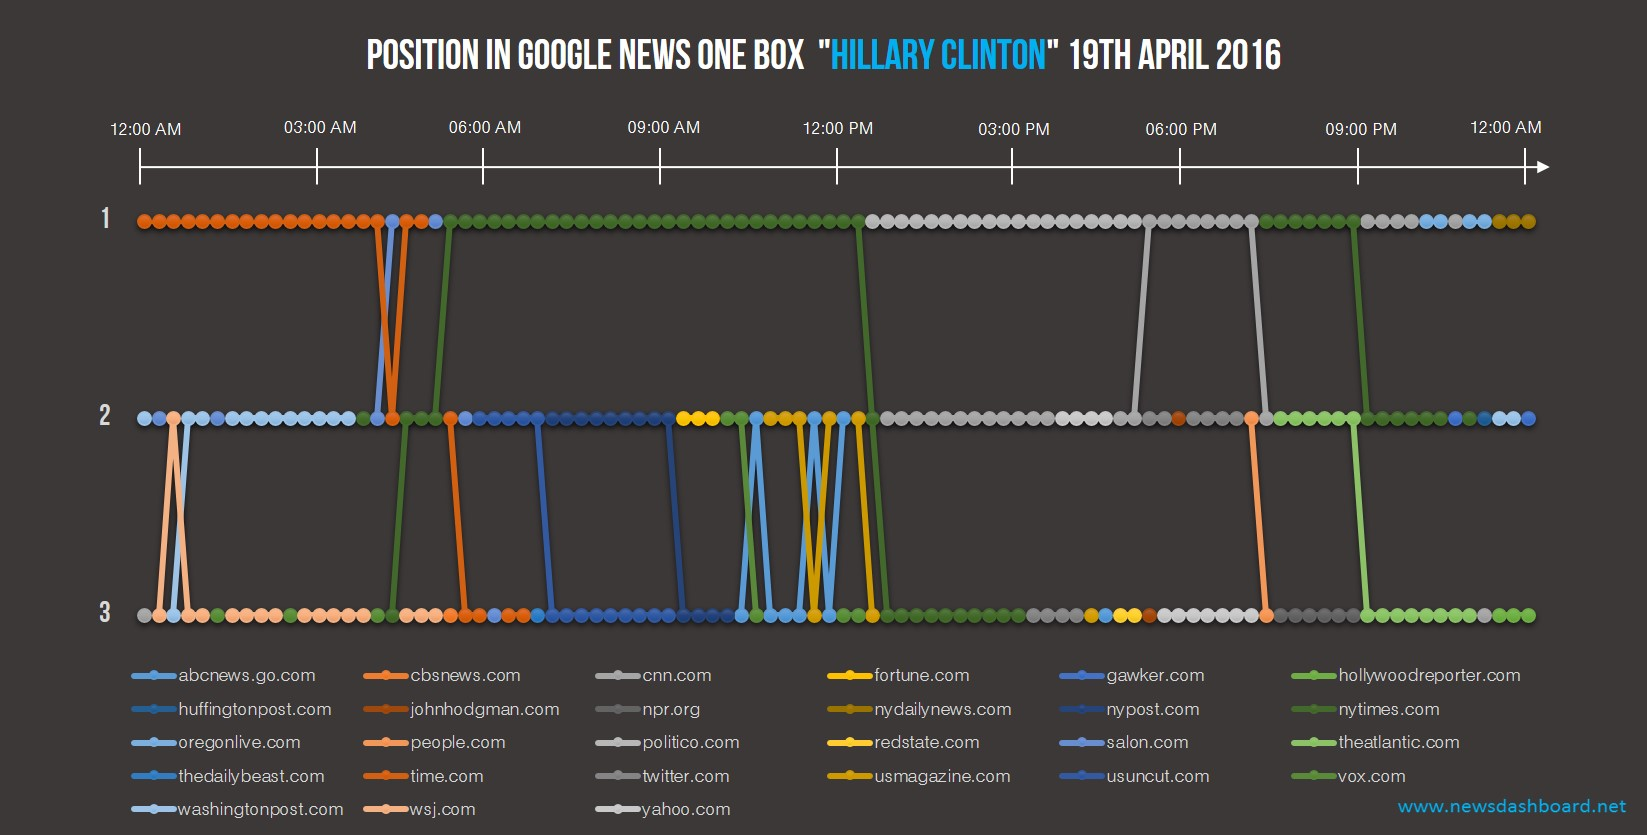 "There is a high fluctuation in the Google News One Box of ""Hillary Clinton""."